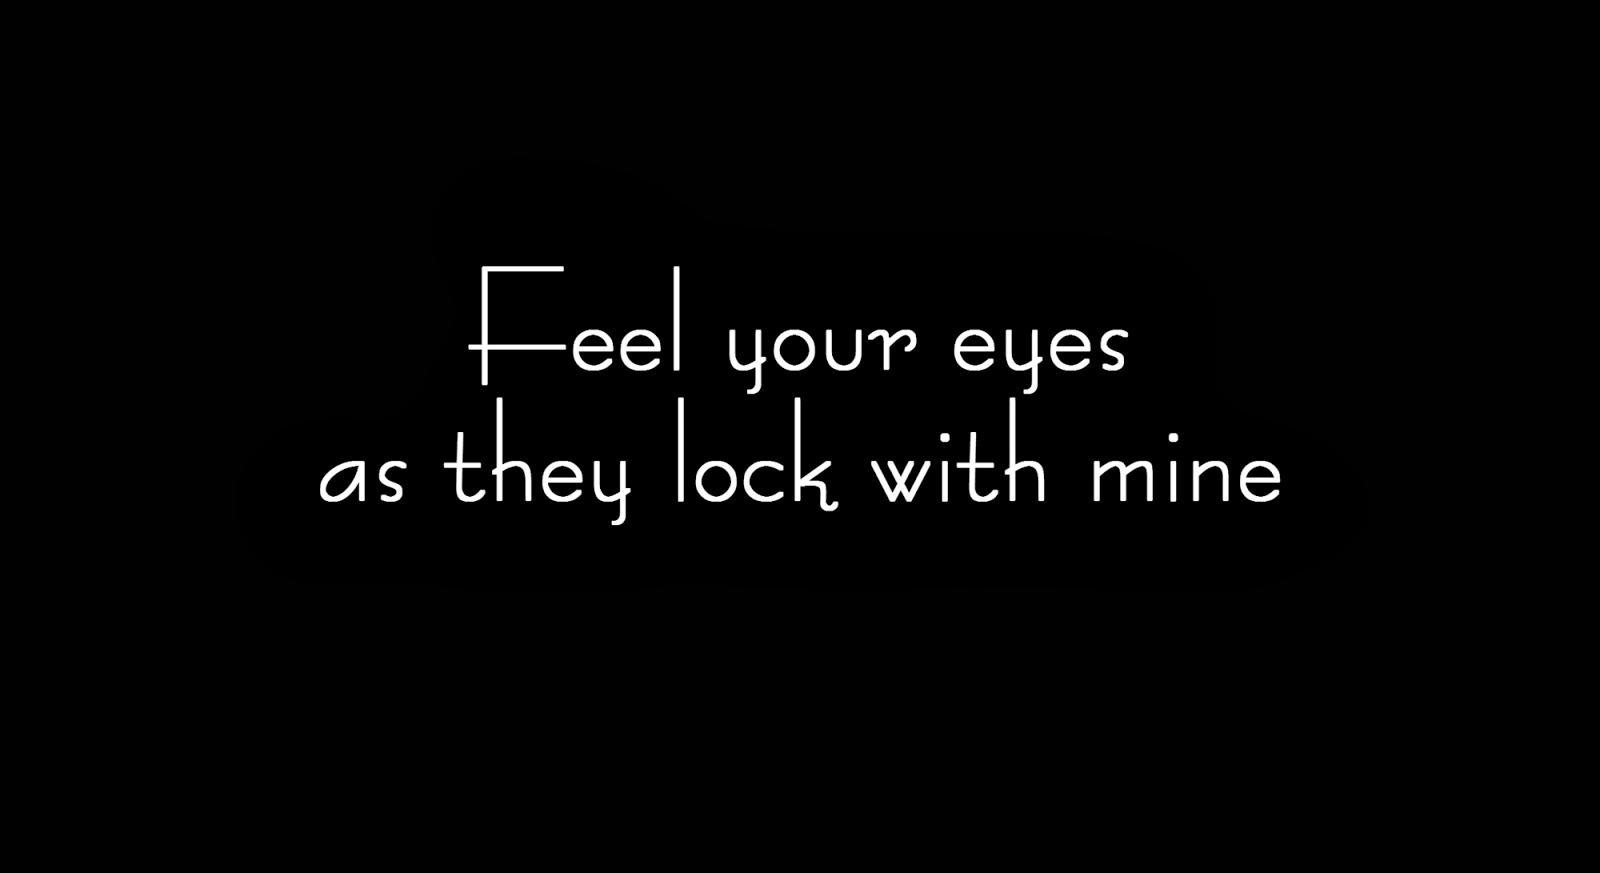 Feel your eyes as they lock with mine